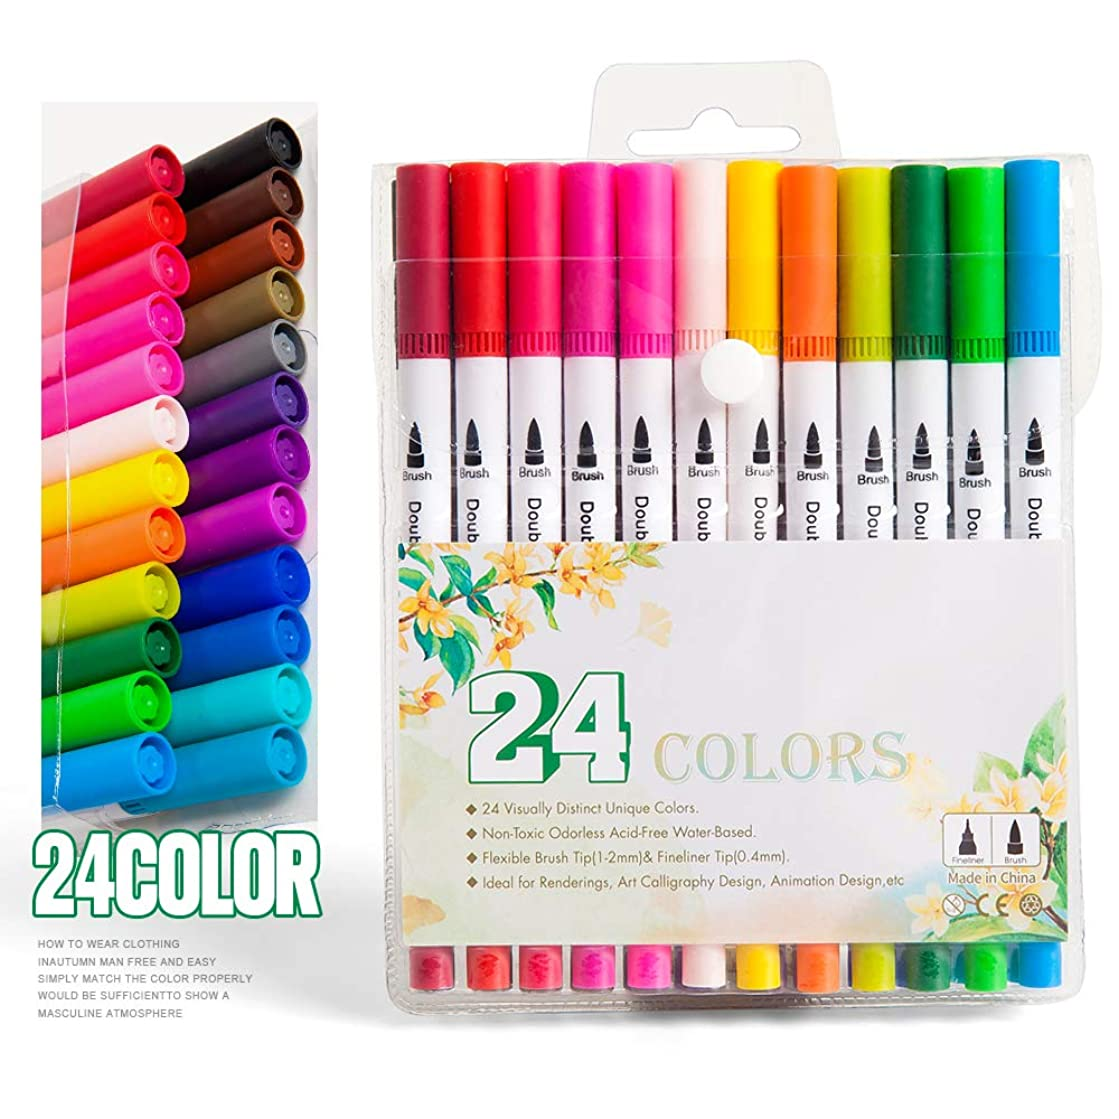 Hethrone Dual Tip Brush Marker Pens Set with 1-2 mm Soft Flexible Brush Tip and 0.4 mm Fineliner Tip (24 Color White)